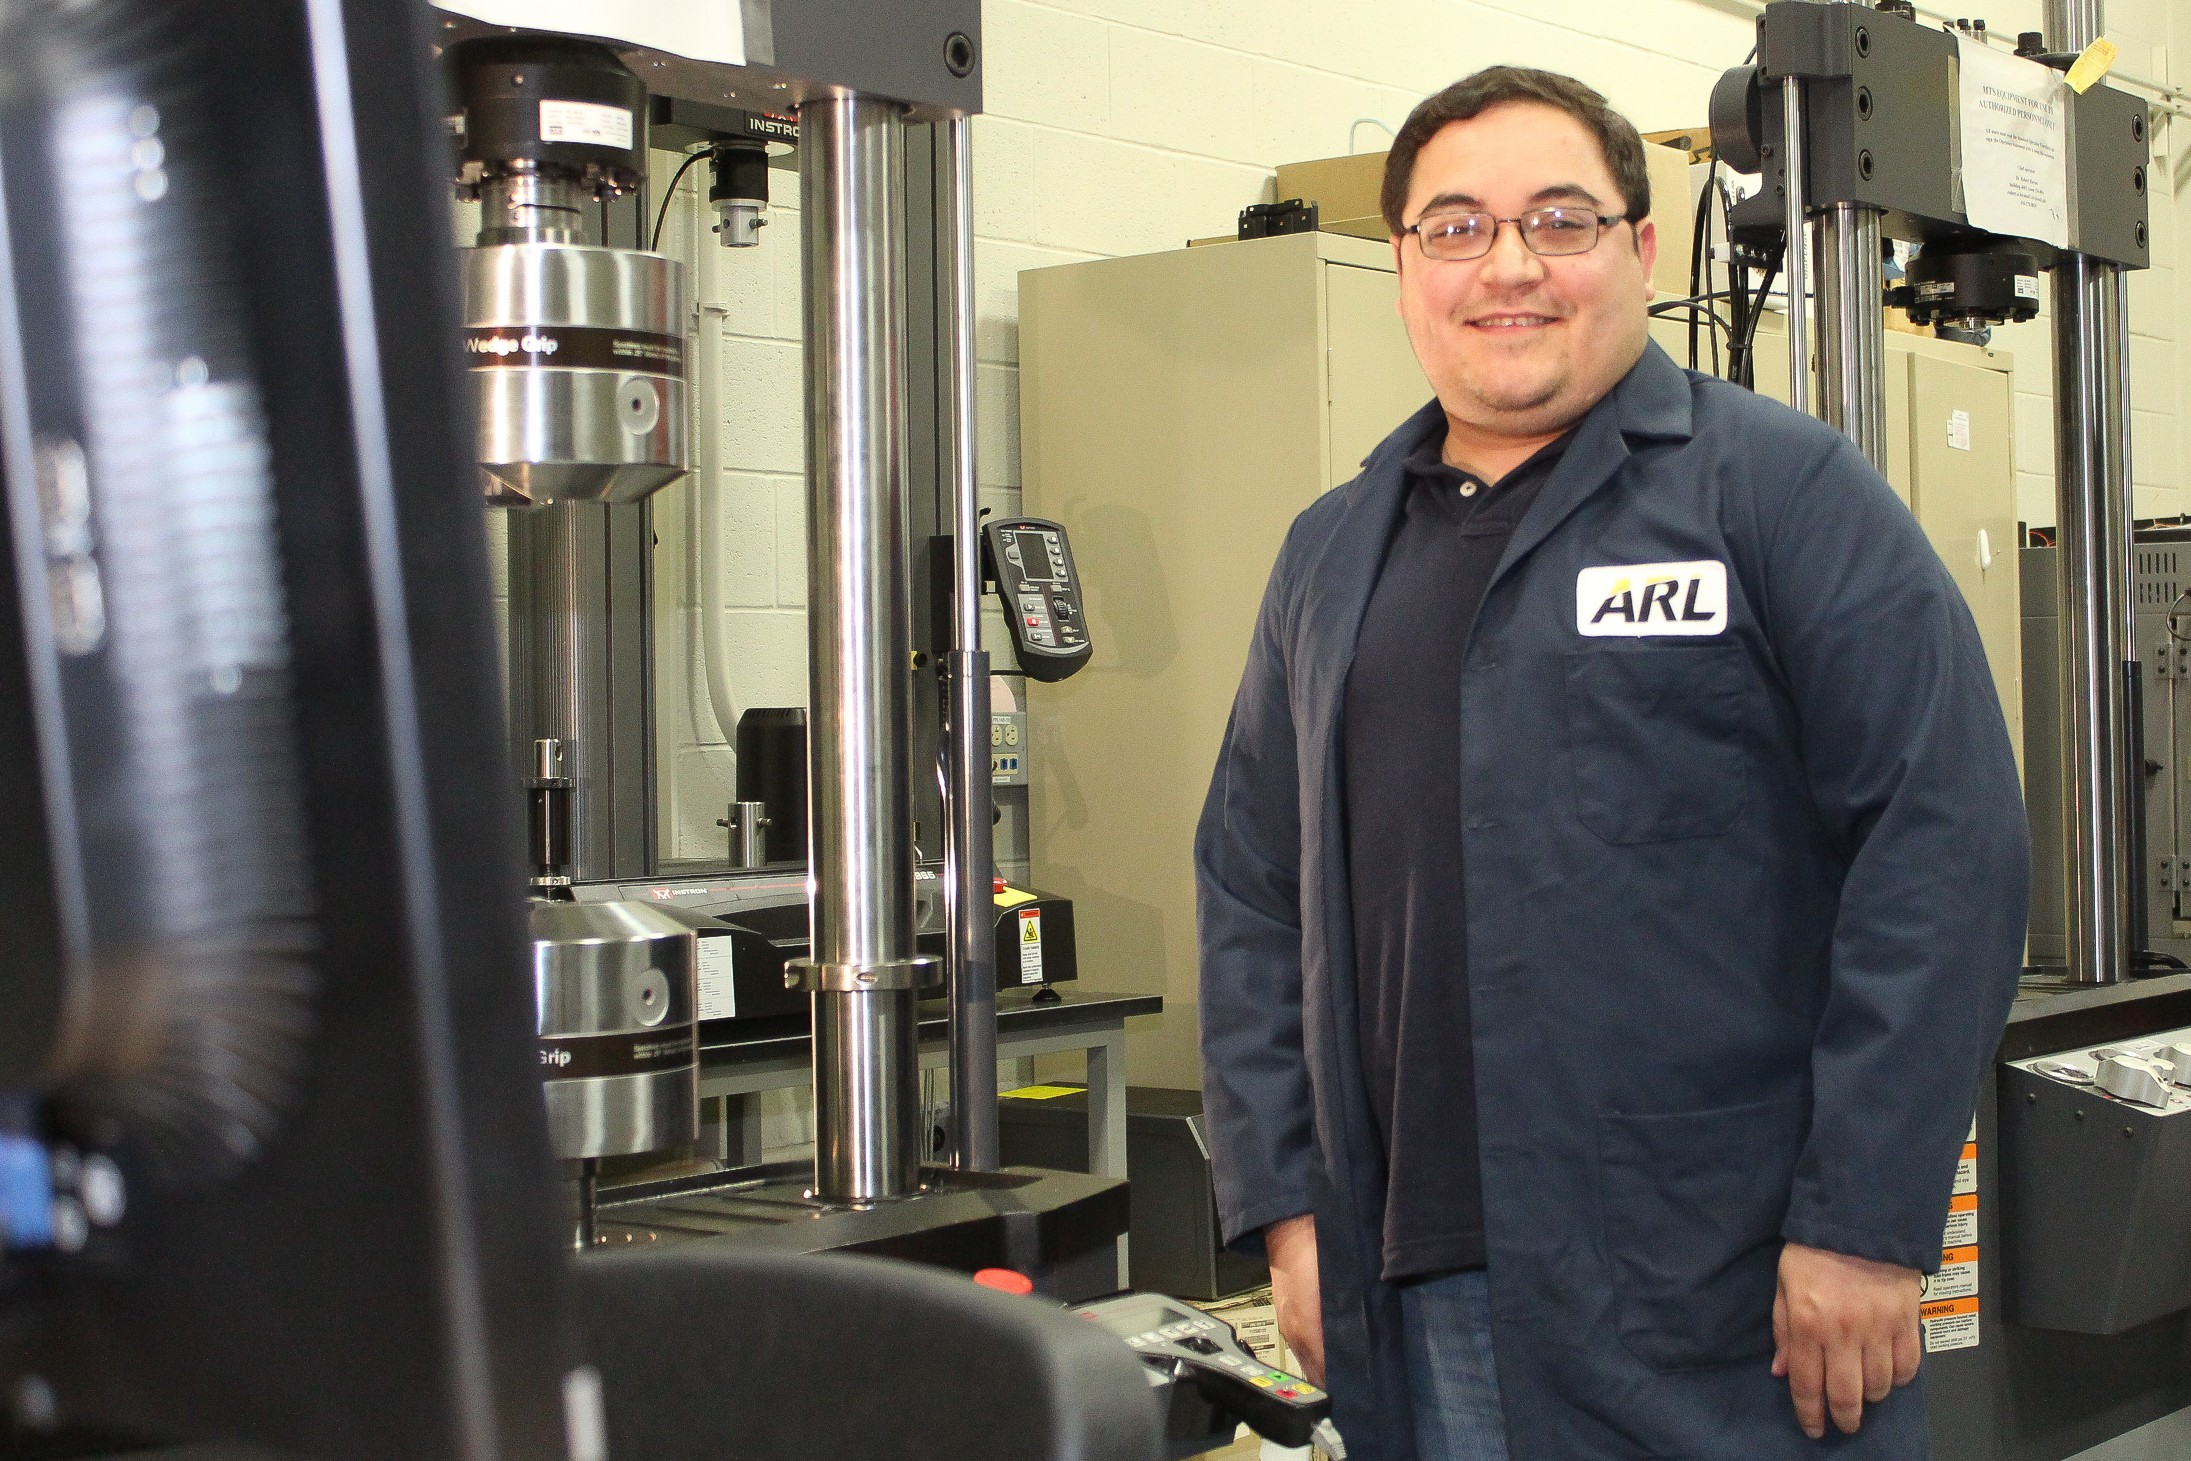 Texas aerospace engineer researches nanotechnology for Army